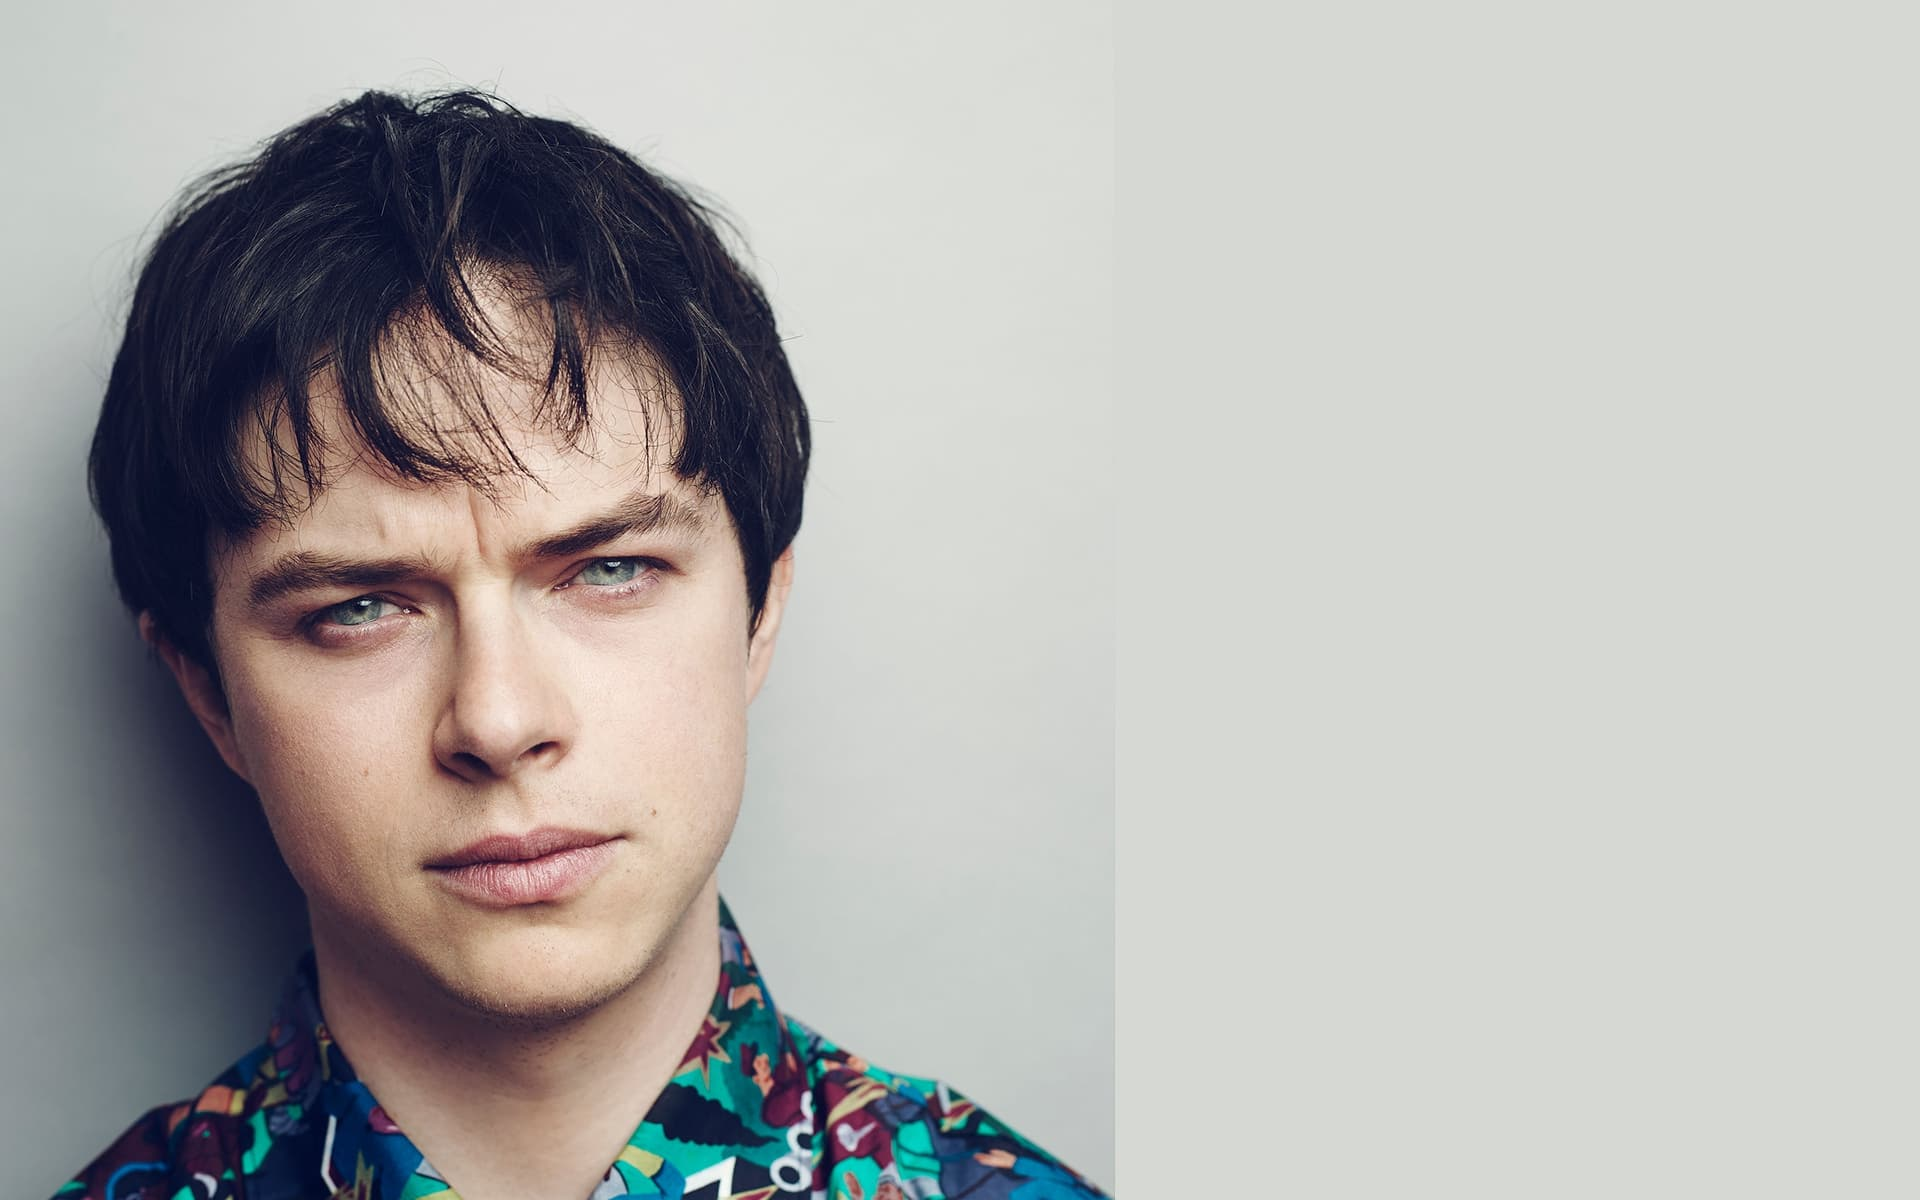 Dane DeHaan Wallpapers HD Images Pictures for Desktop High Quality